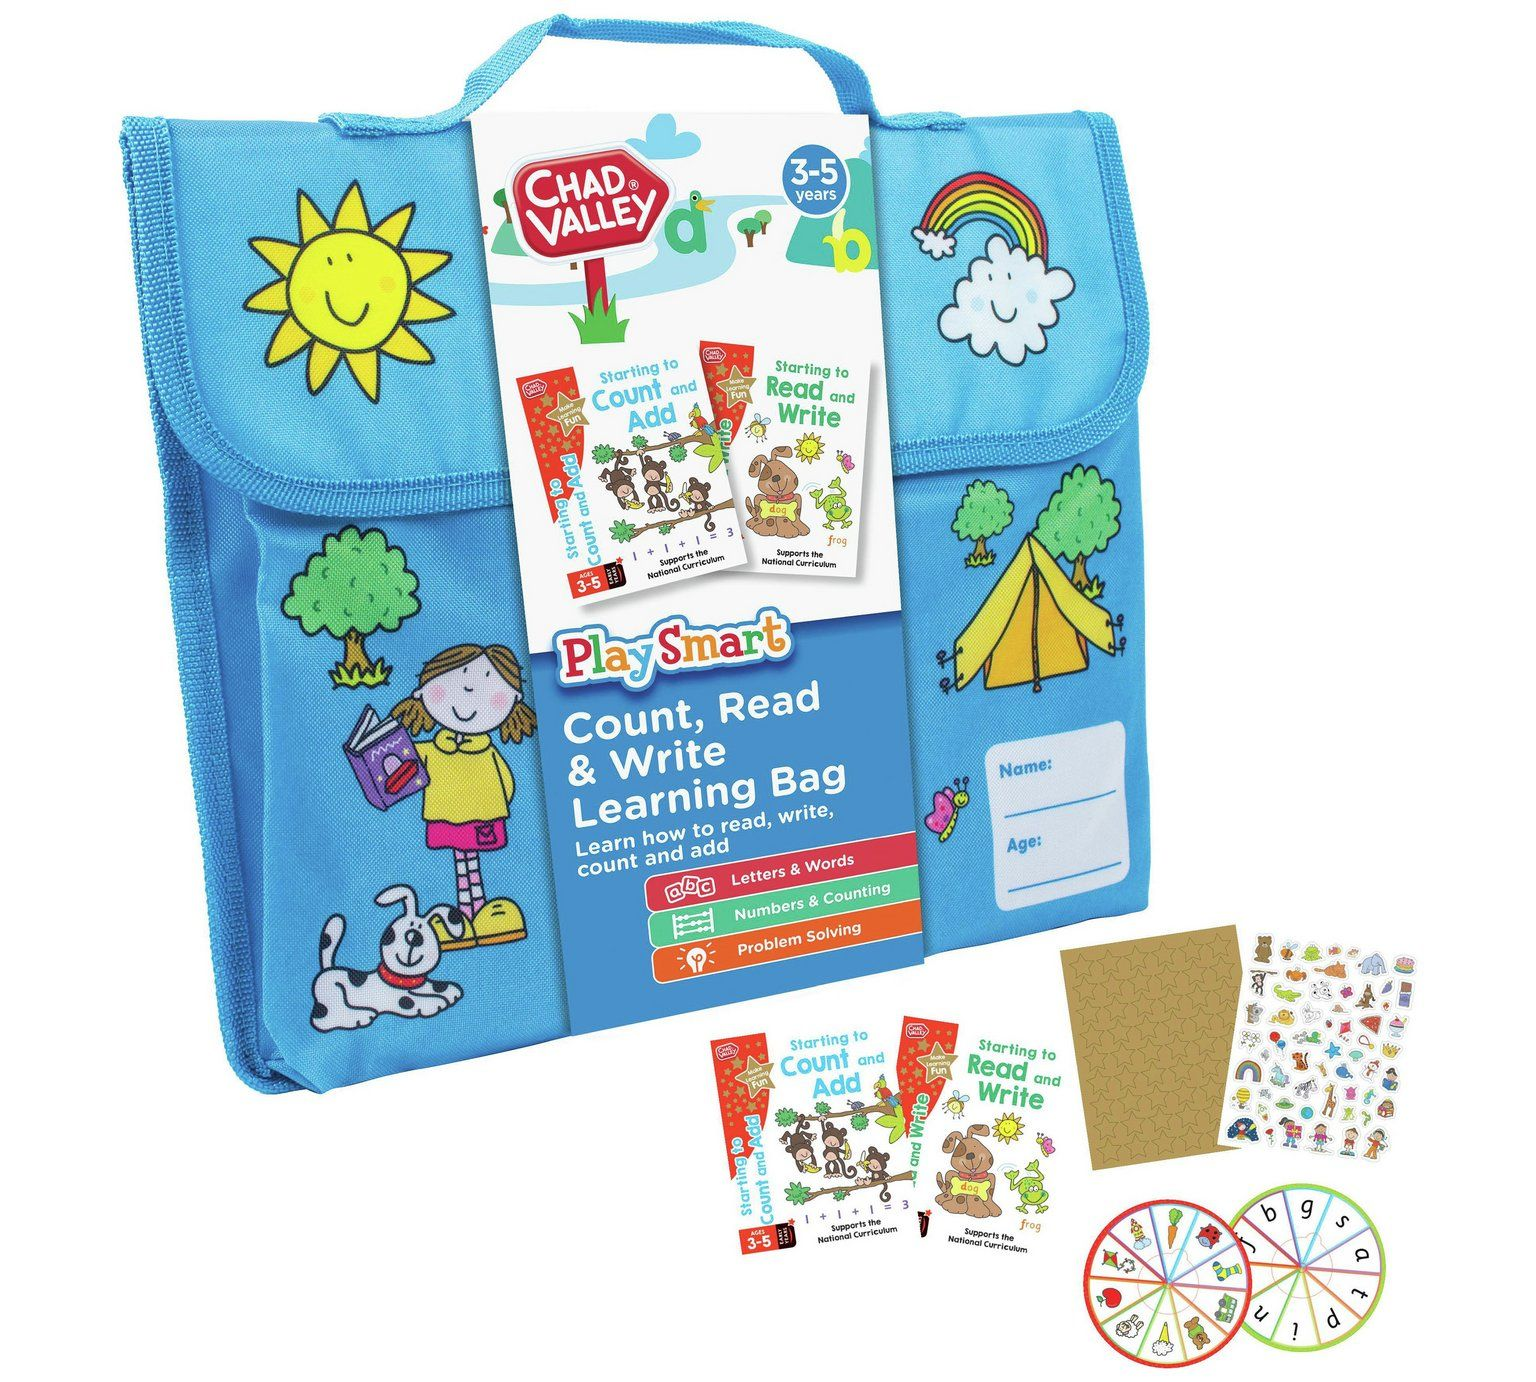 Buy Chad Valley PlaySmart Count, Read & Write Learning Bag ...